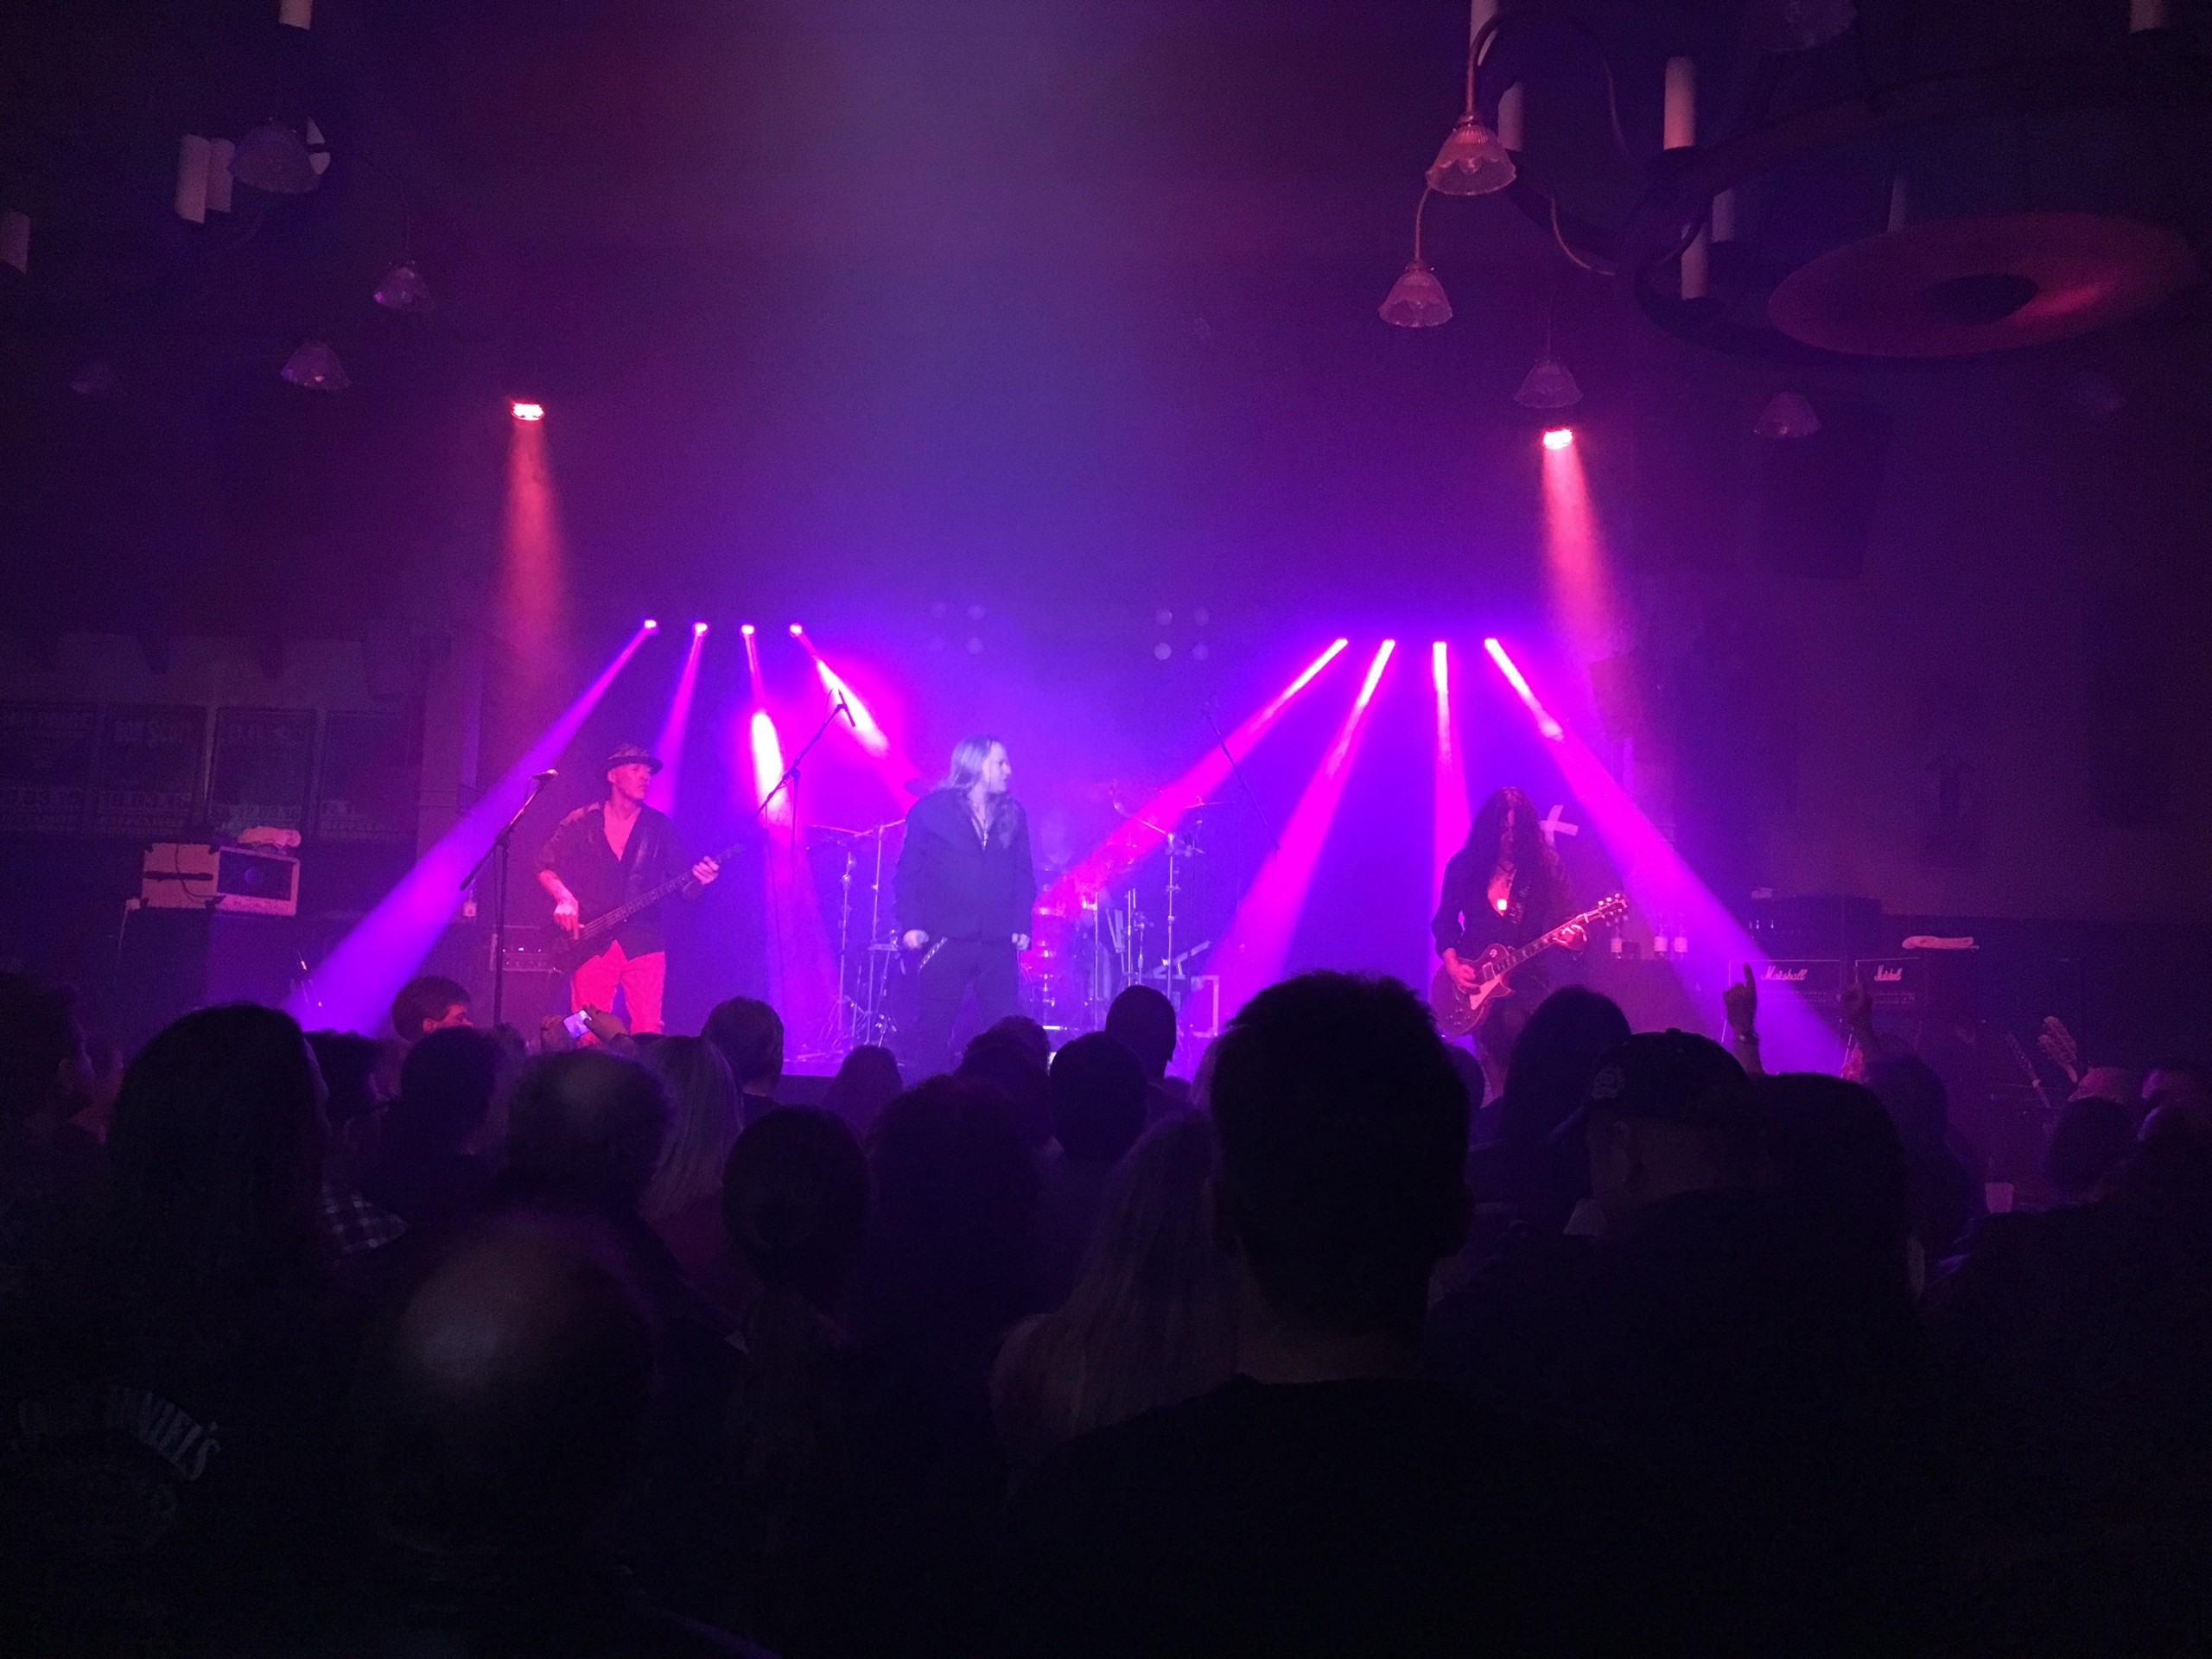 audio engineering recent work touring whisky fingers band